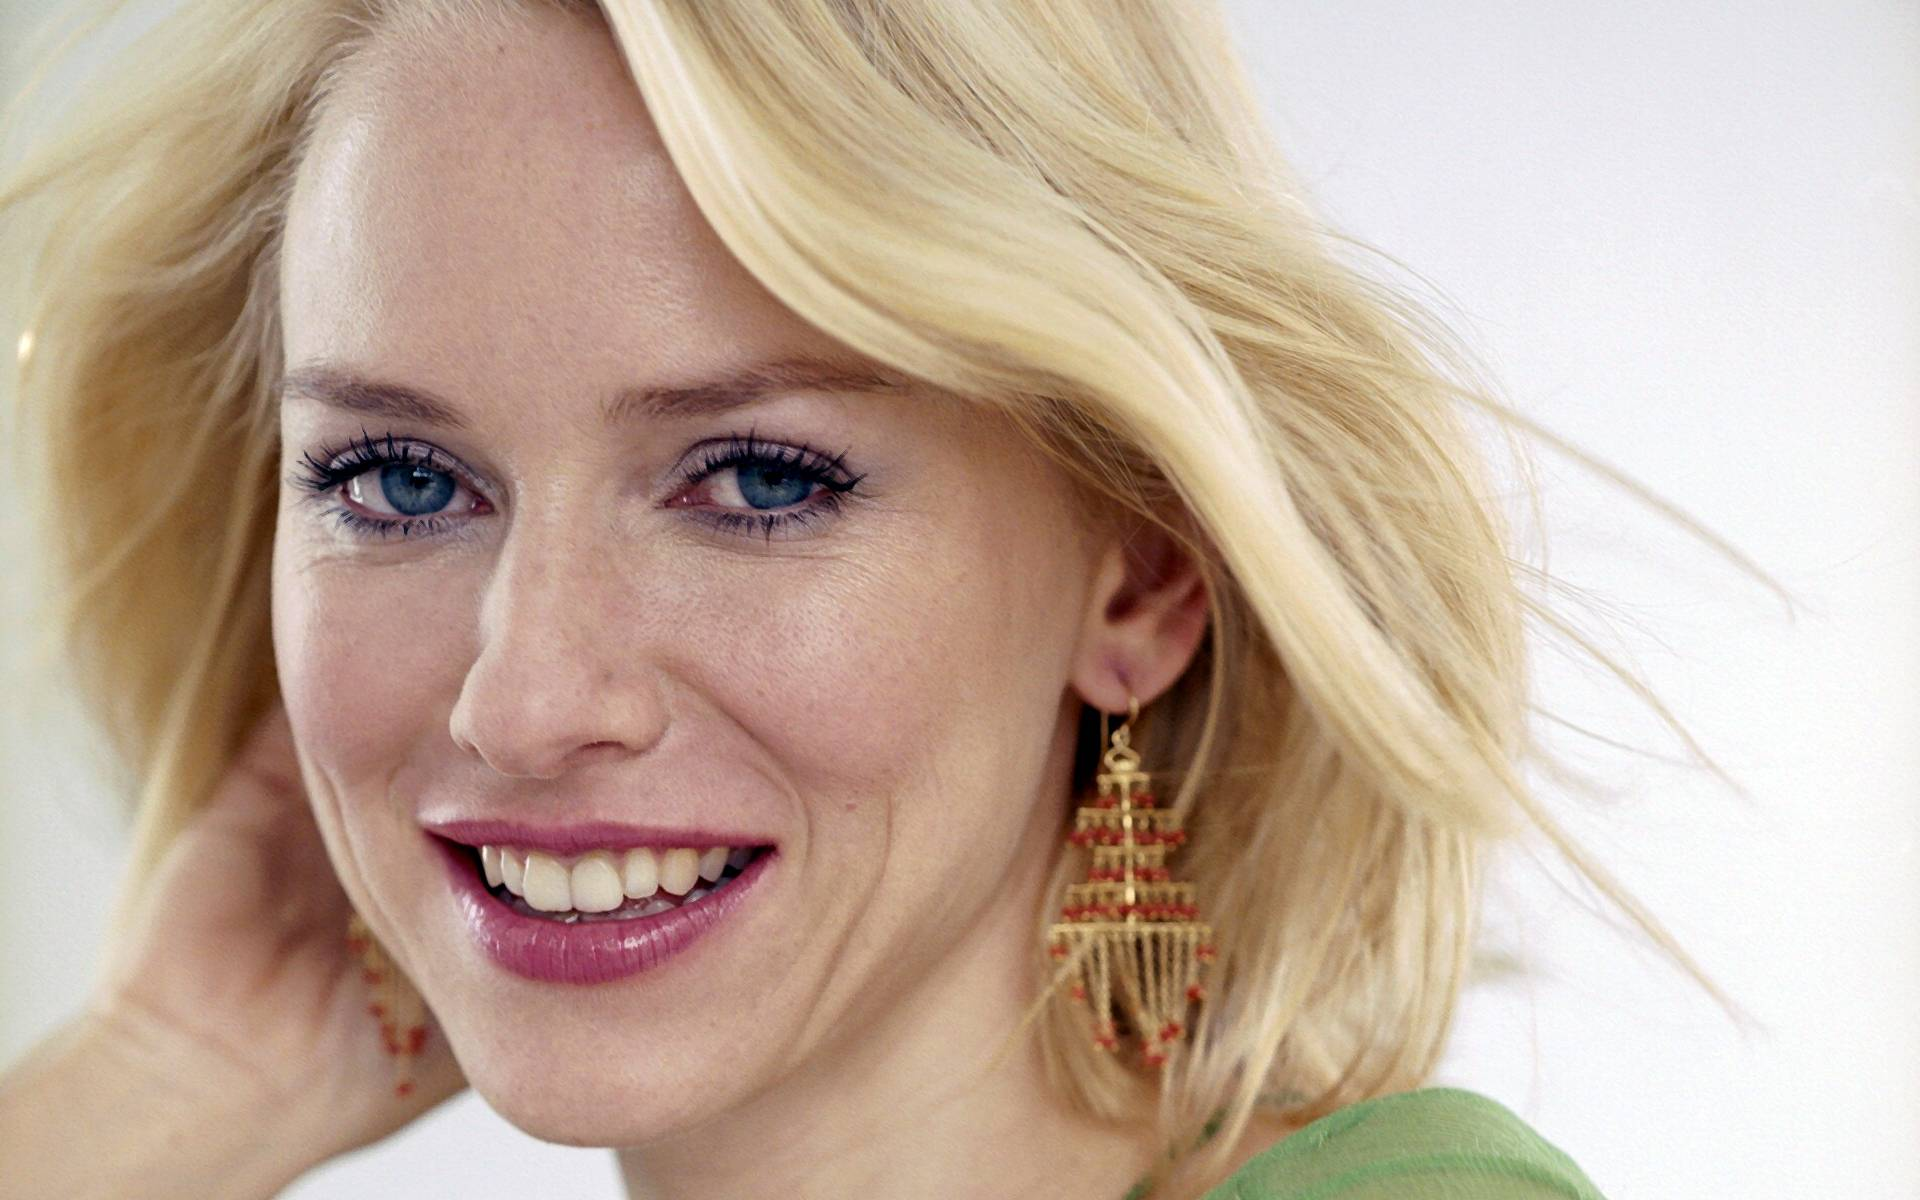 Naomi Watts HD Wallpaper Wallpaper - Buubi.